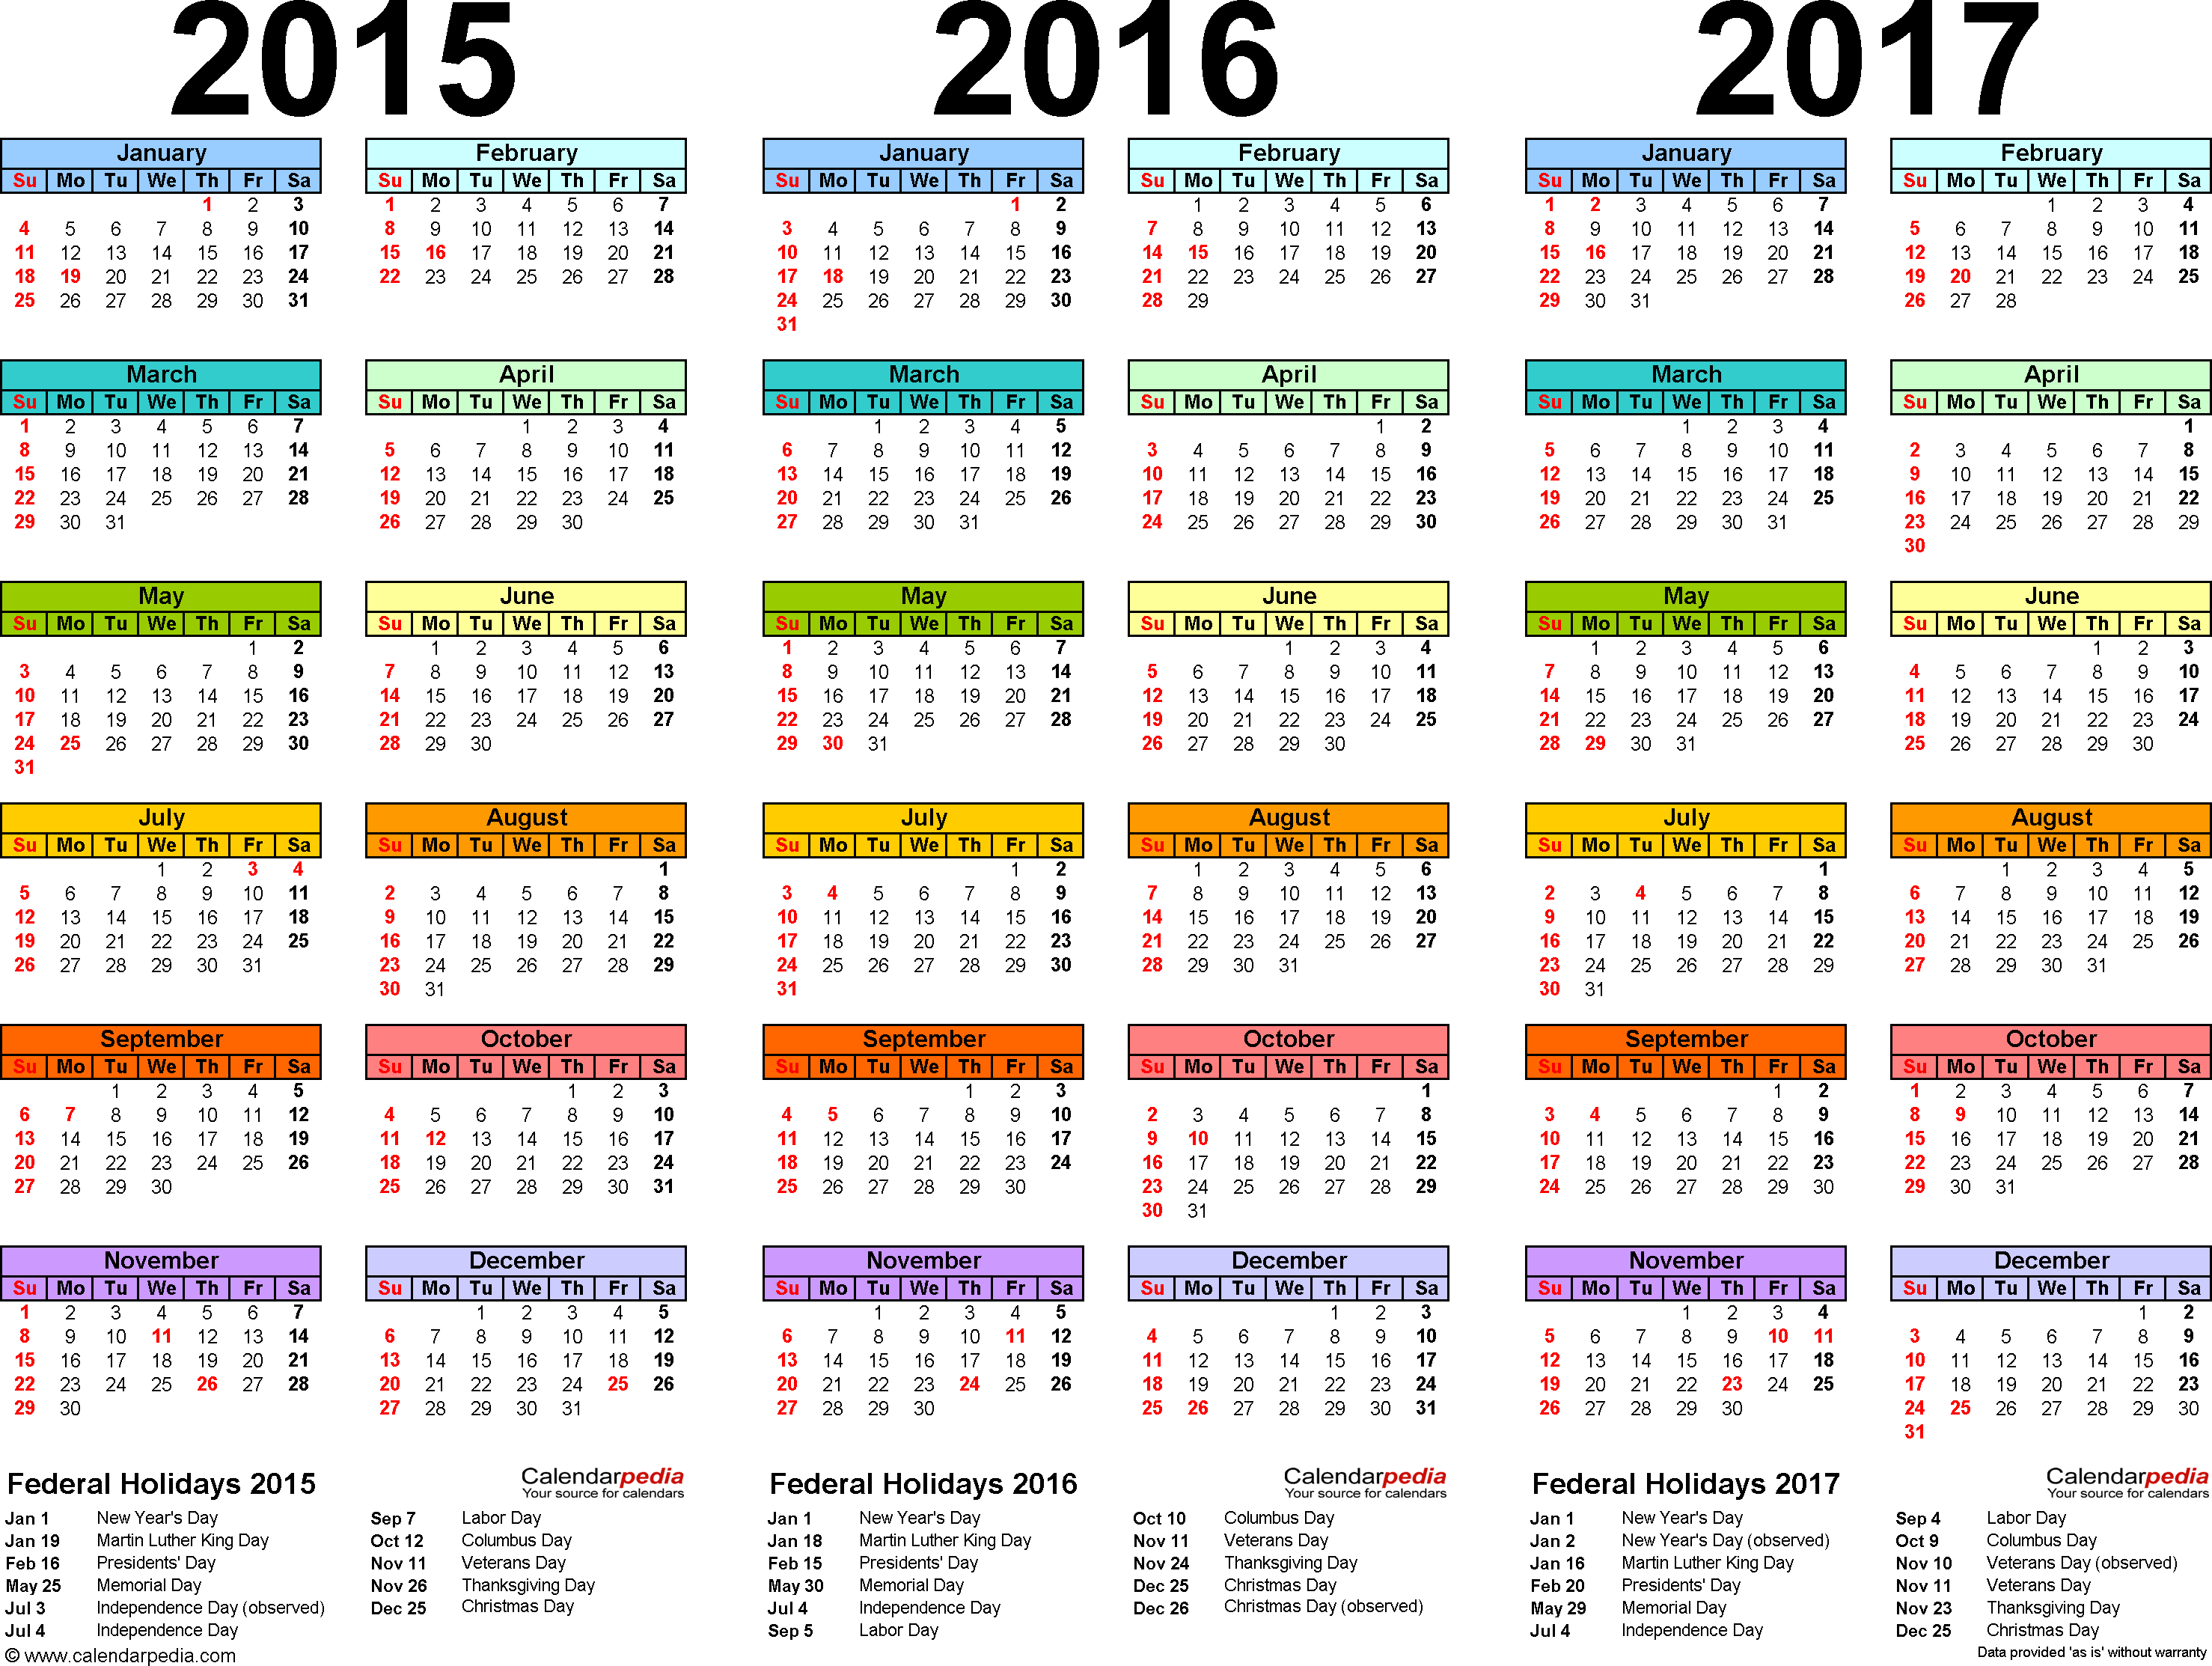 Template 1: PDF template for three year calendar 2015/2016/2017 (landscape orientation, 1 page, in color)